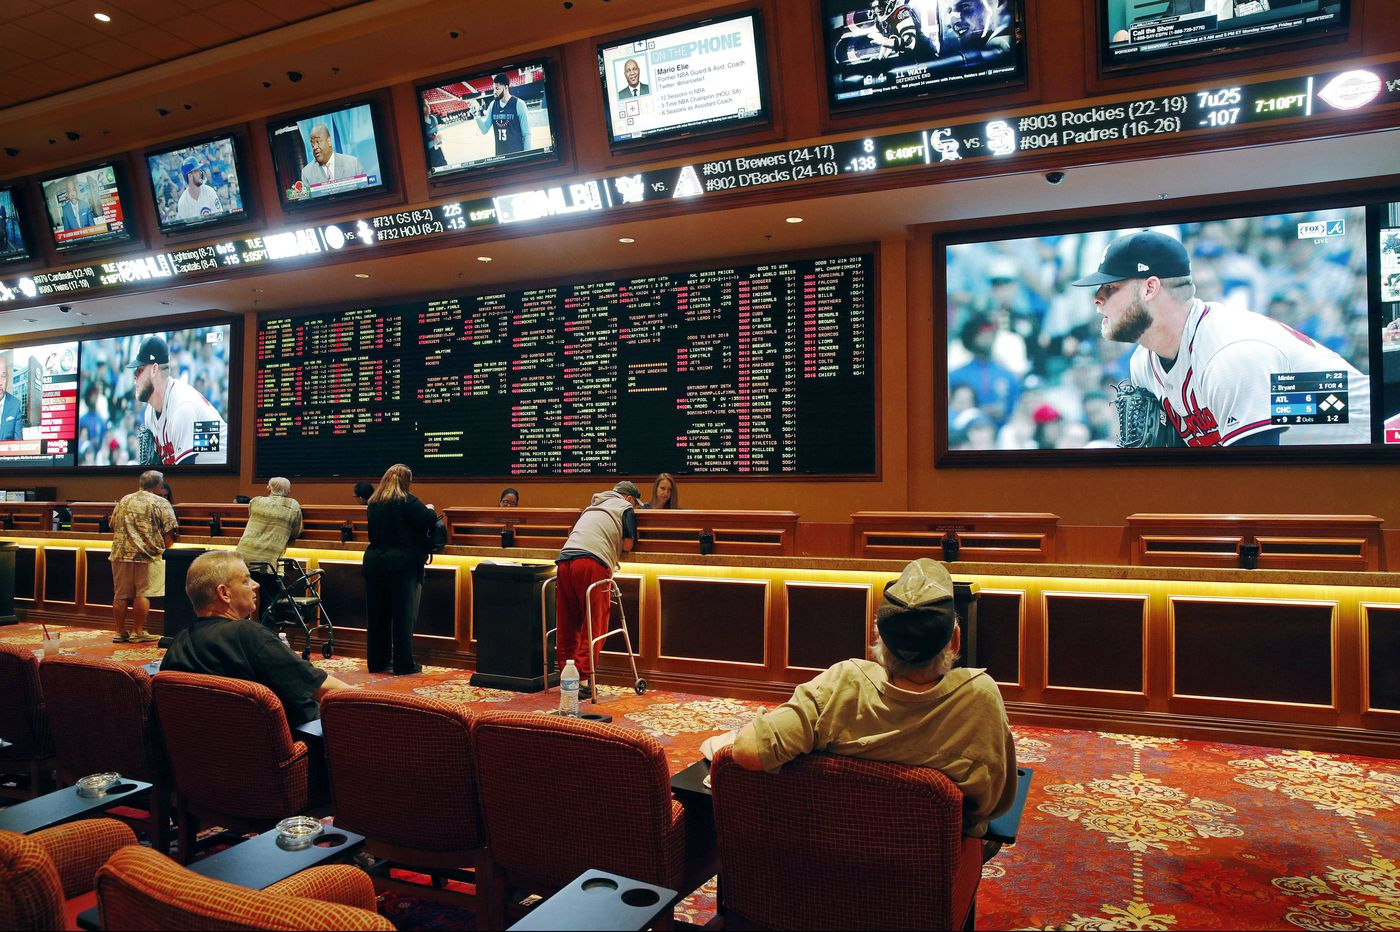 While Ocean Resort revels in its sportsbook, the Hard Rock is silent